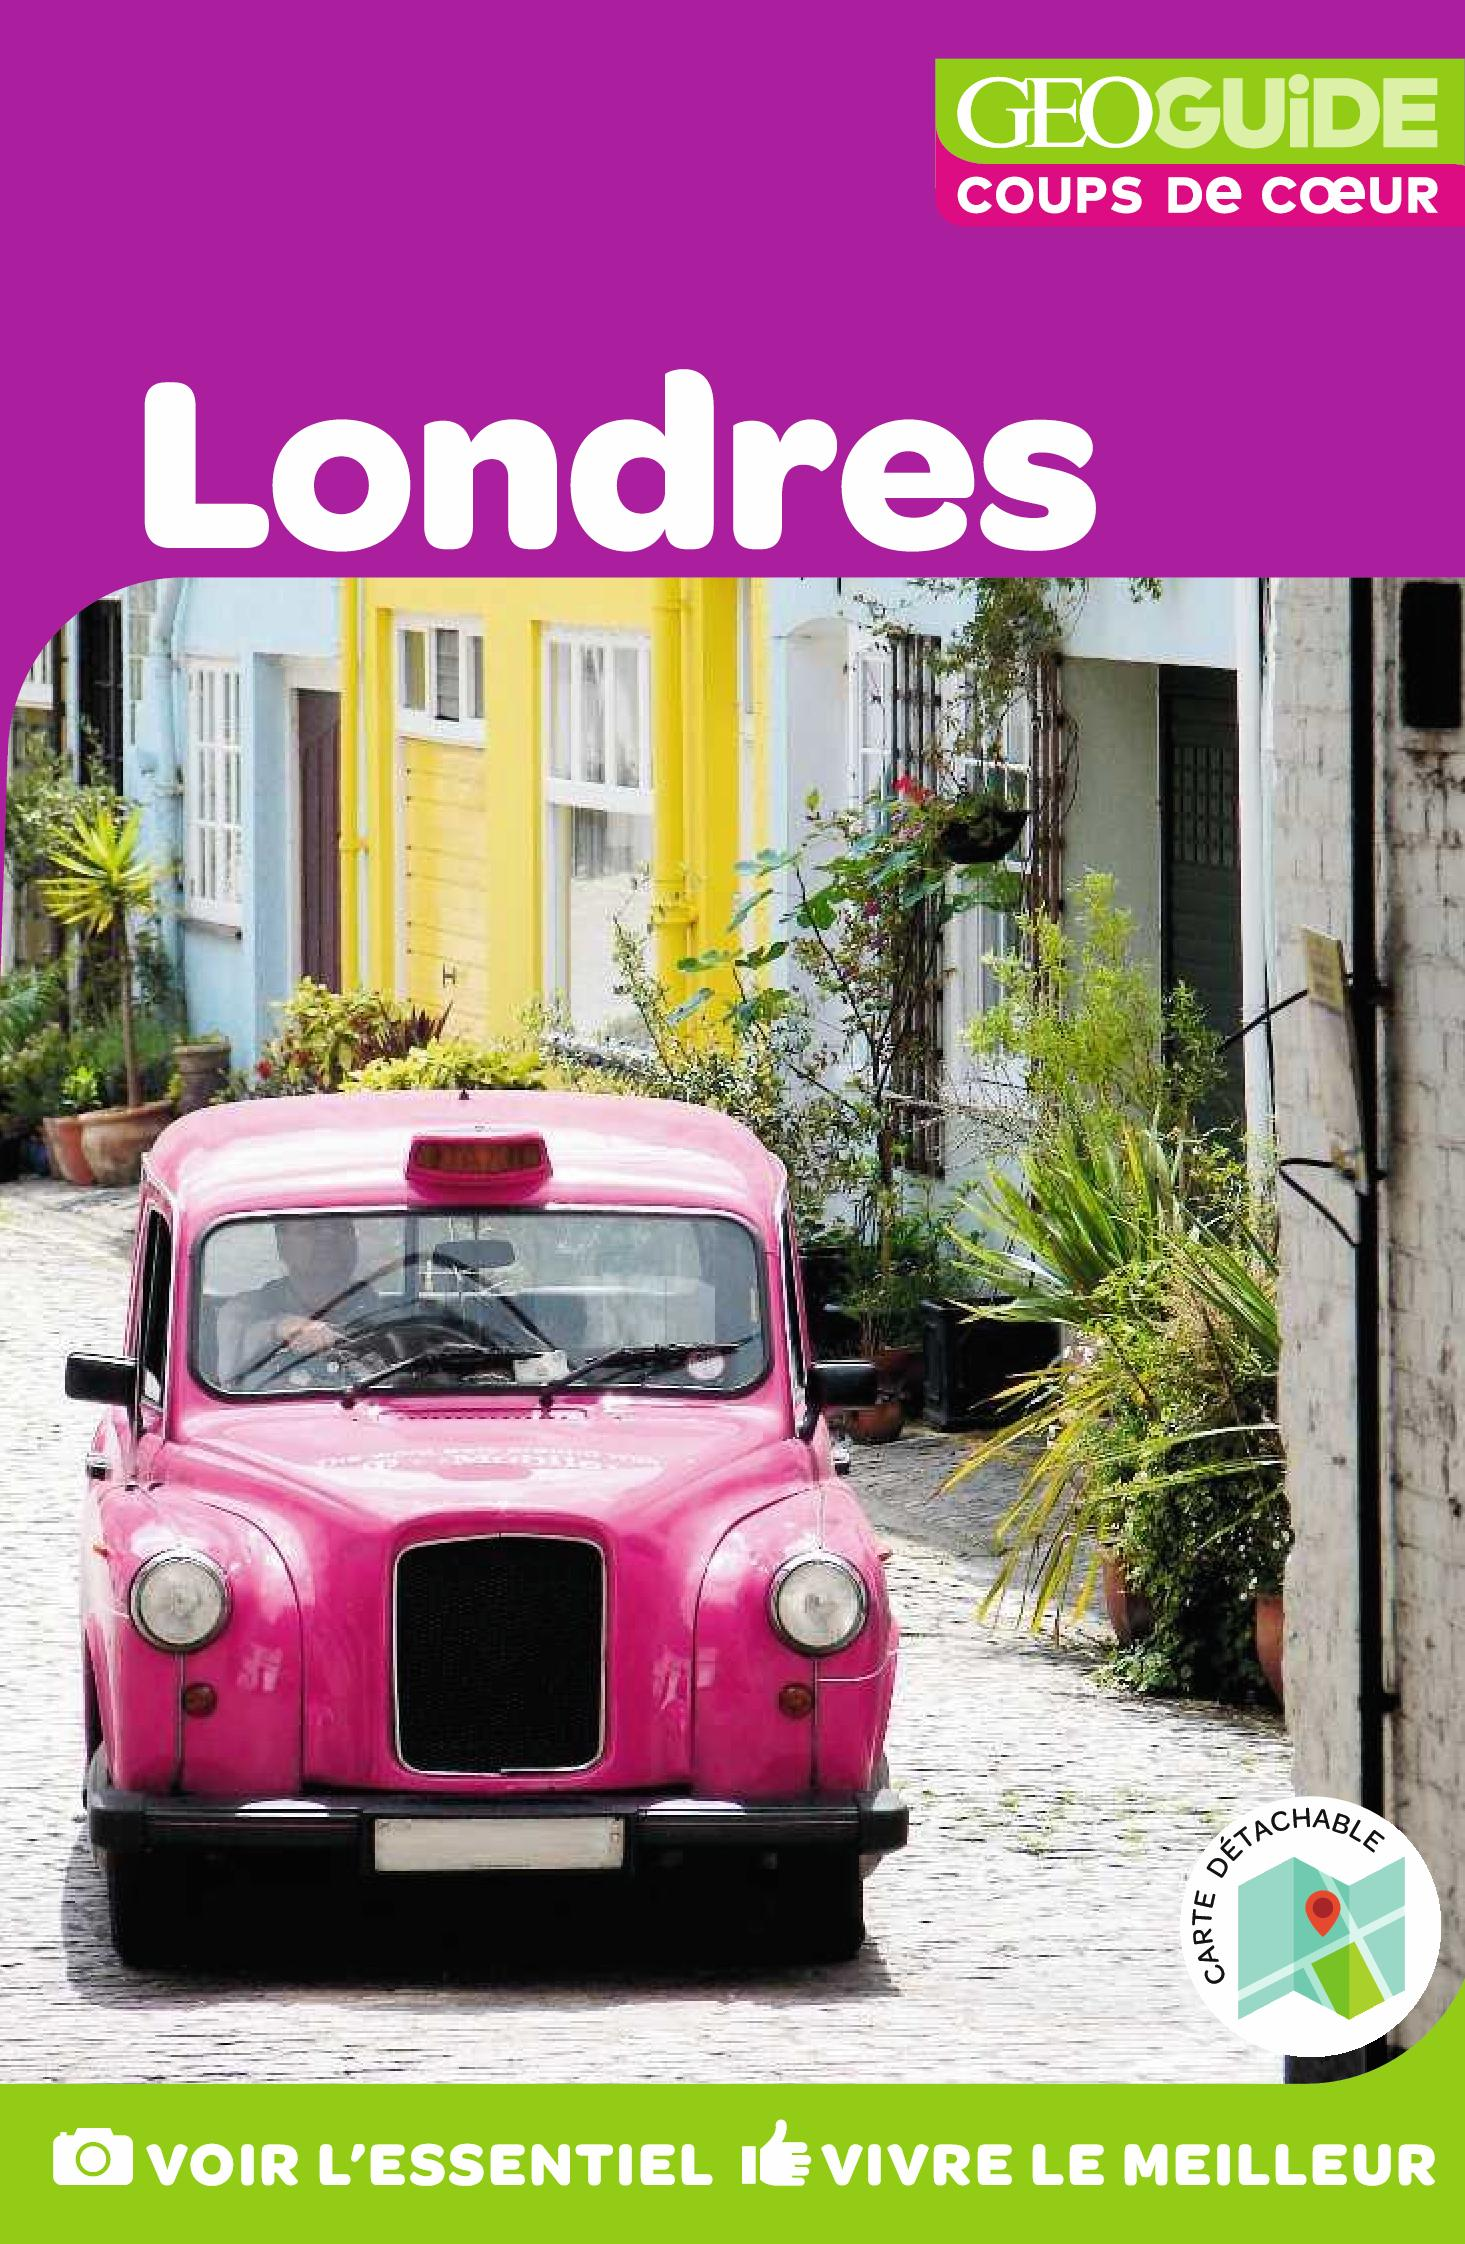 GEOguide Coups de coeur Londres | Collectif Gallimard Loisirs,